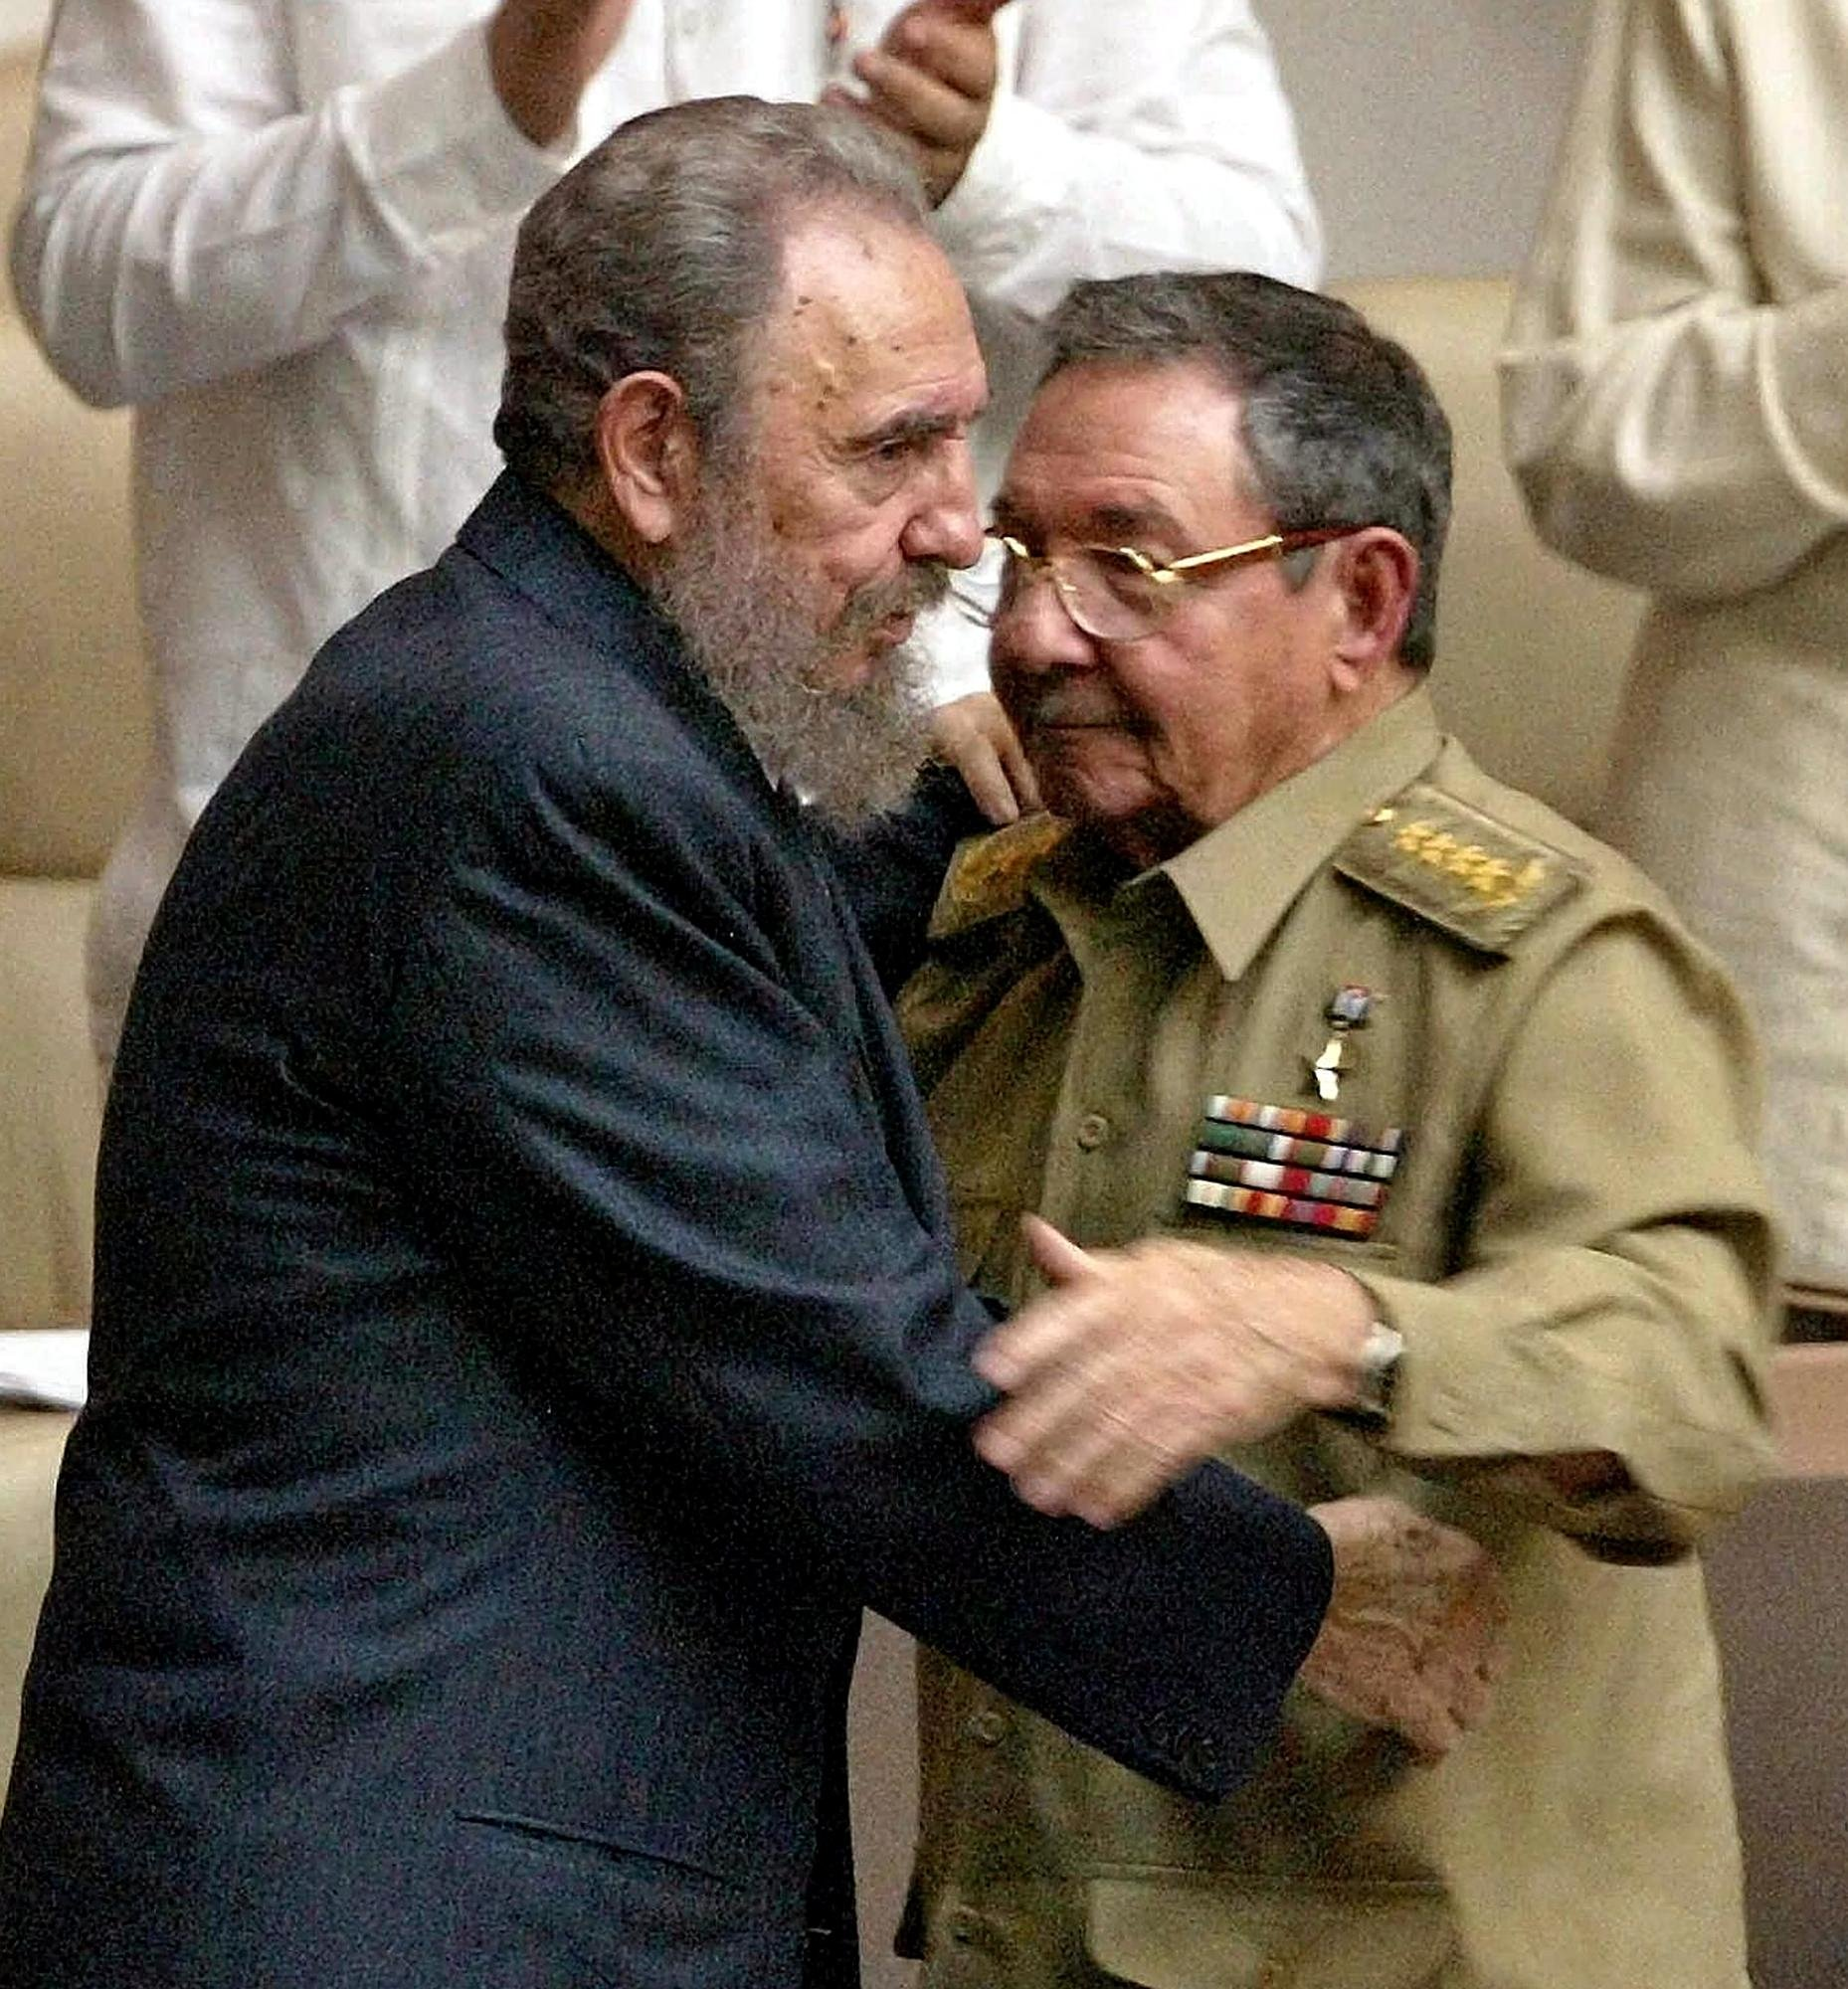 Cuban President Fidel Castro (L), the newly elected president of the Cuban State Council and of the Cuban Council of Ministers, is congratulated by his brother, Vice-President and Minister of the Armed Forces General Raul Castro, in Havana, Cuba, March 5, 2003. (AFP Photo)